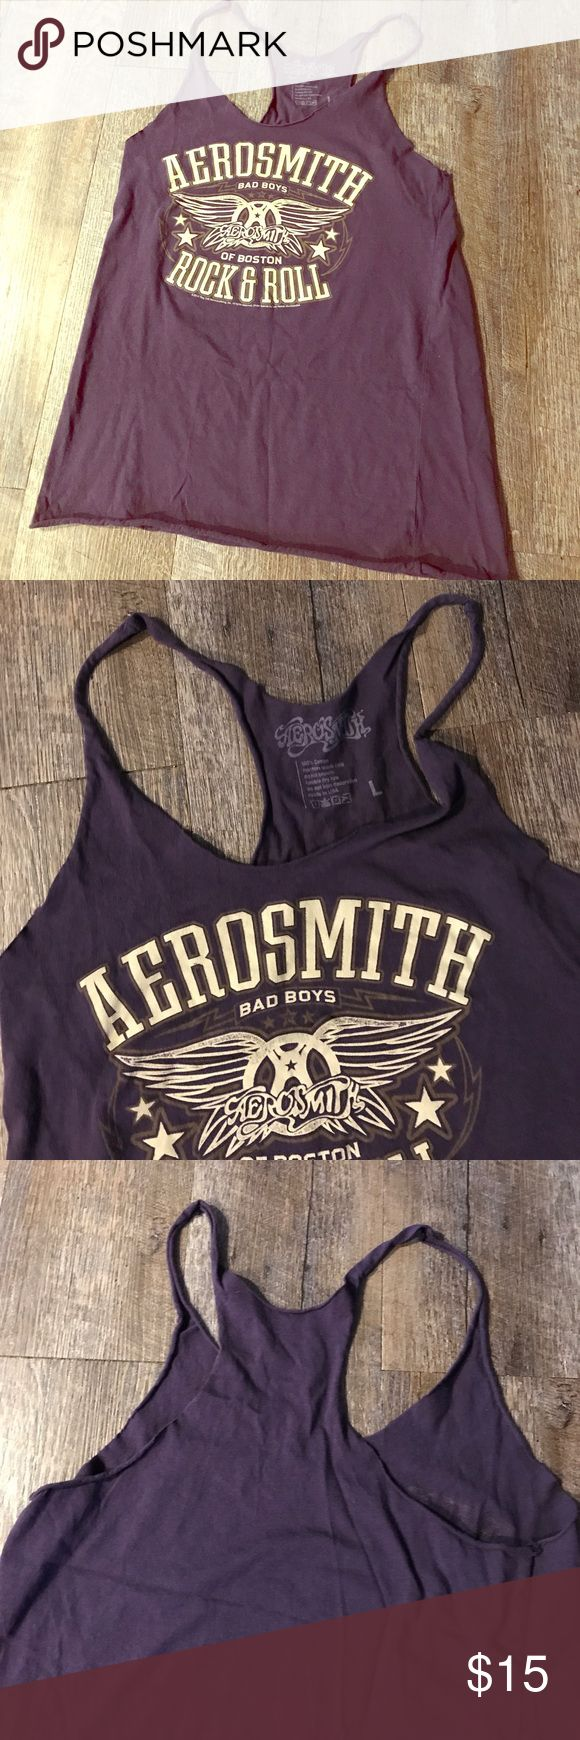 Aerosmith purple tank top shirt 70s classic rock Rarely worn! In great condition! Size fits small. Size is large but fits like a small/ medium. Bust is 34. Has the vintage look, faded coloring, and cut of sleeves. Great for everyday fashion or working out. aerosmith Tops Tank Tops